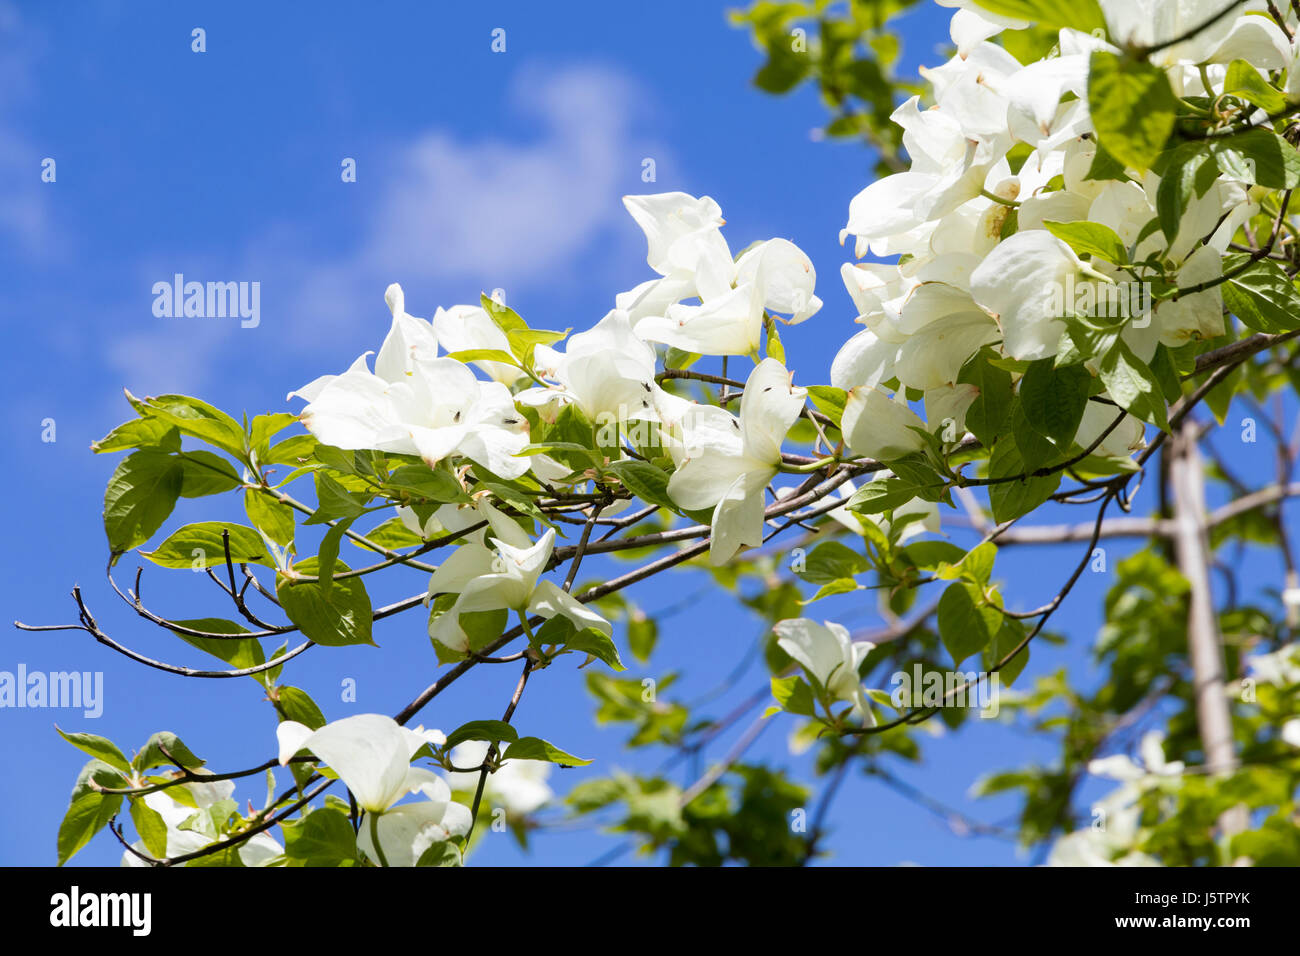 Dogwood Tree Flowers Stock Photos & Dogwood Tree Flowers Stock ...